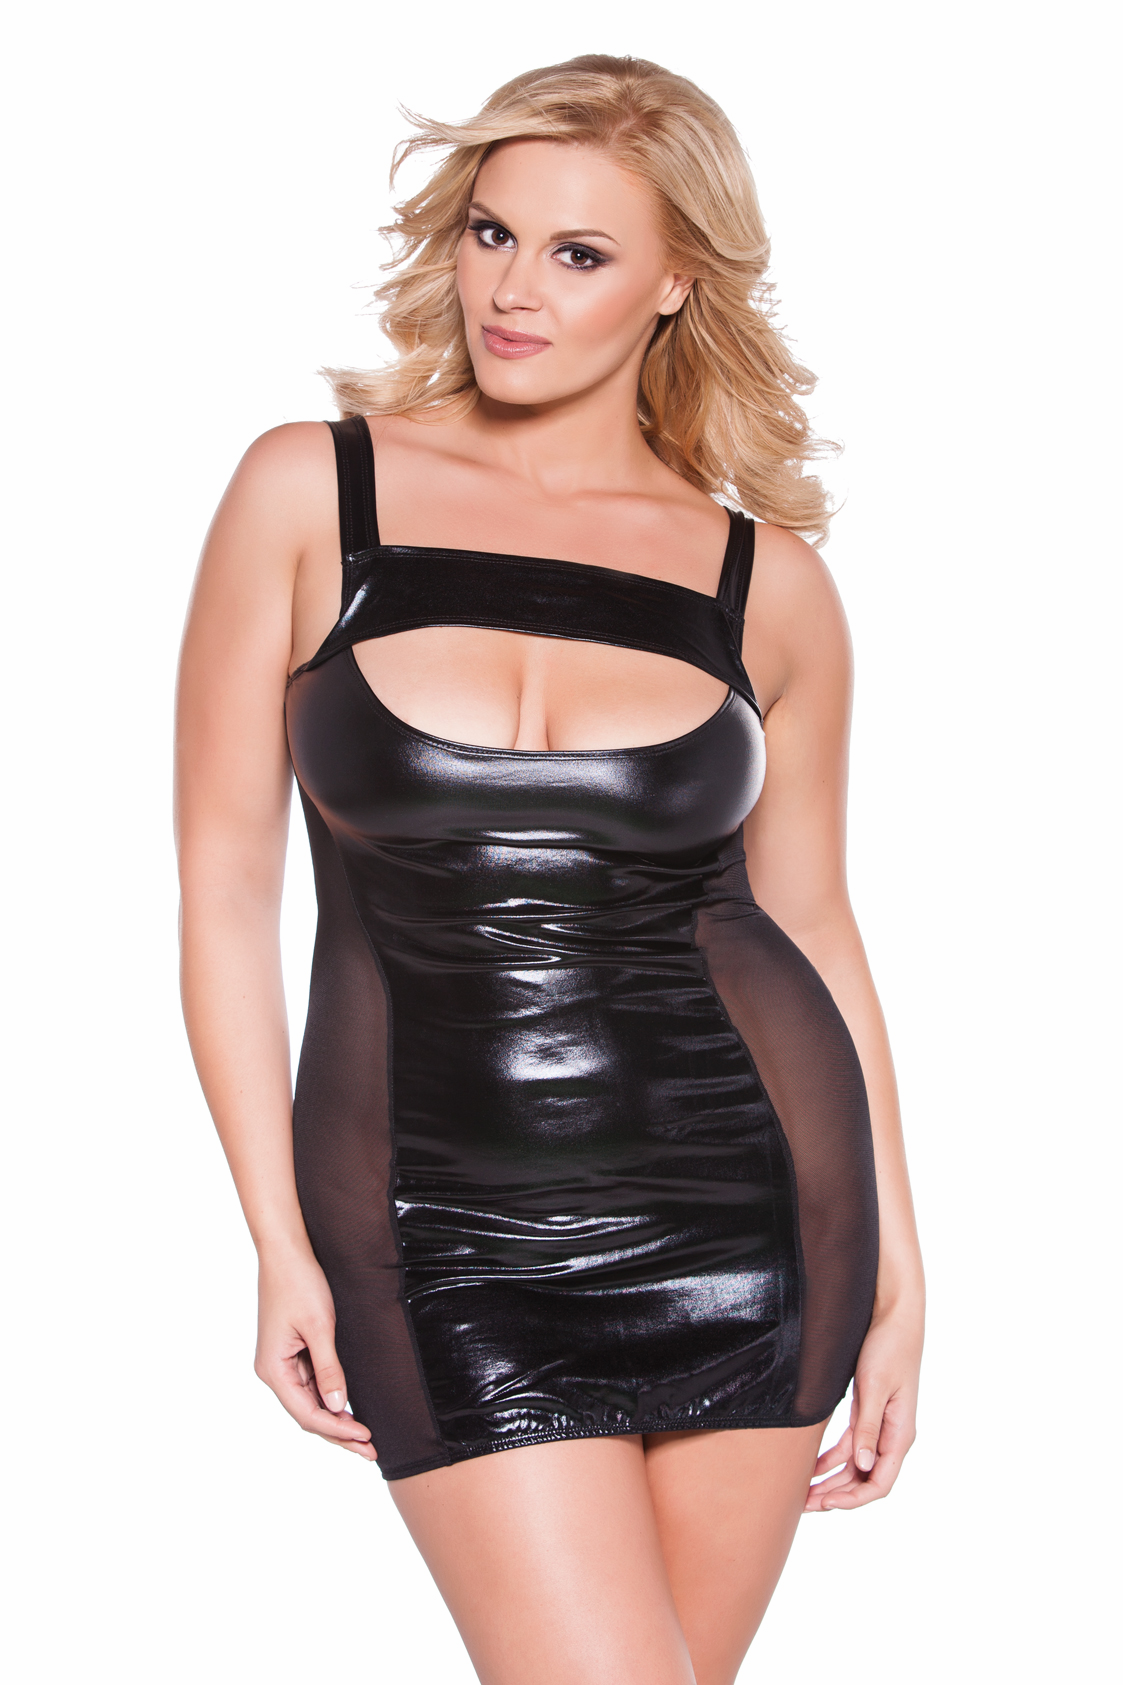 17-6602xk Plus Size Wet Look Cutout Dress by Kitten